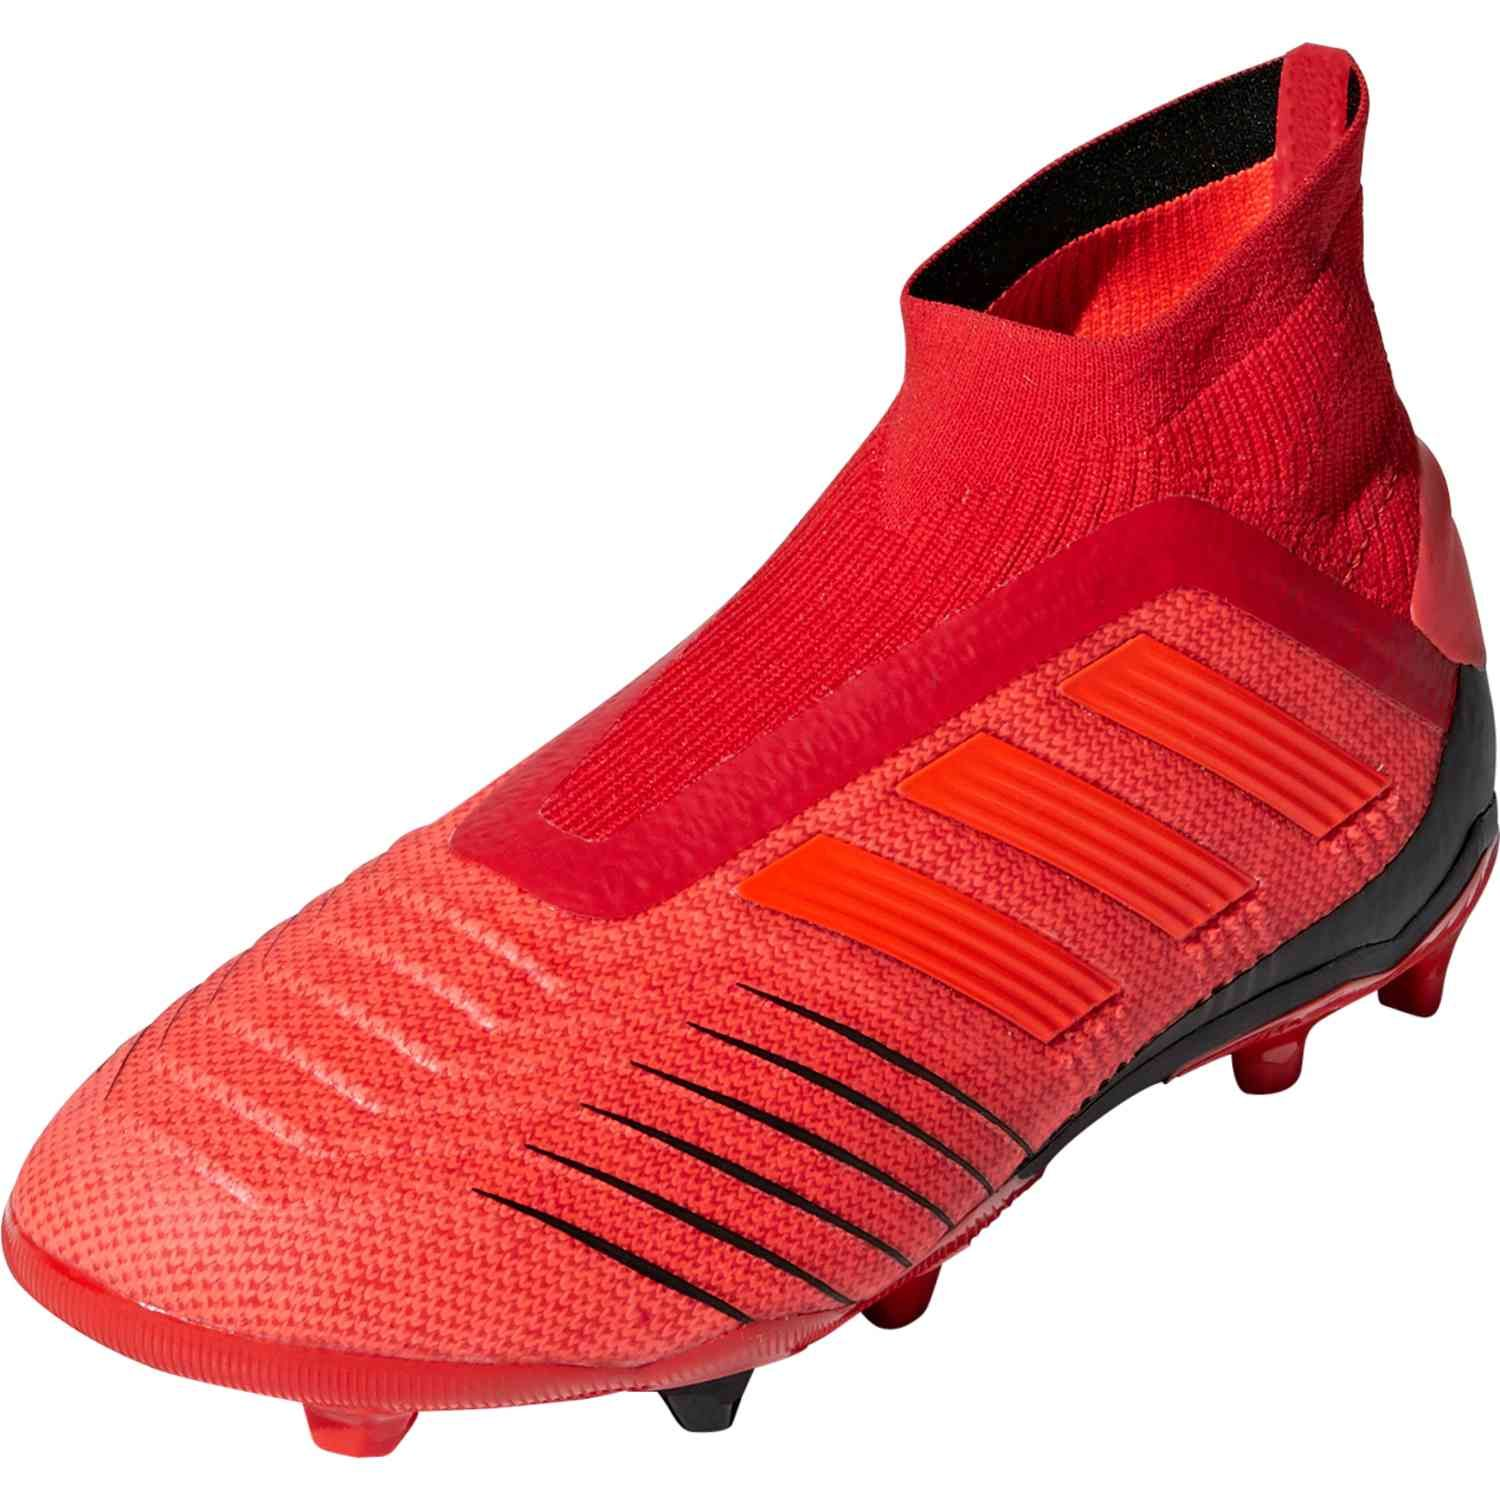 Kids Adidas Predator 19 Fg Initiator Pack Soccerpro Football Shoes Youth Soccer Cleats Soccer Cleats